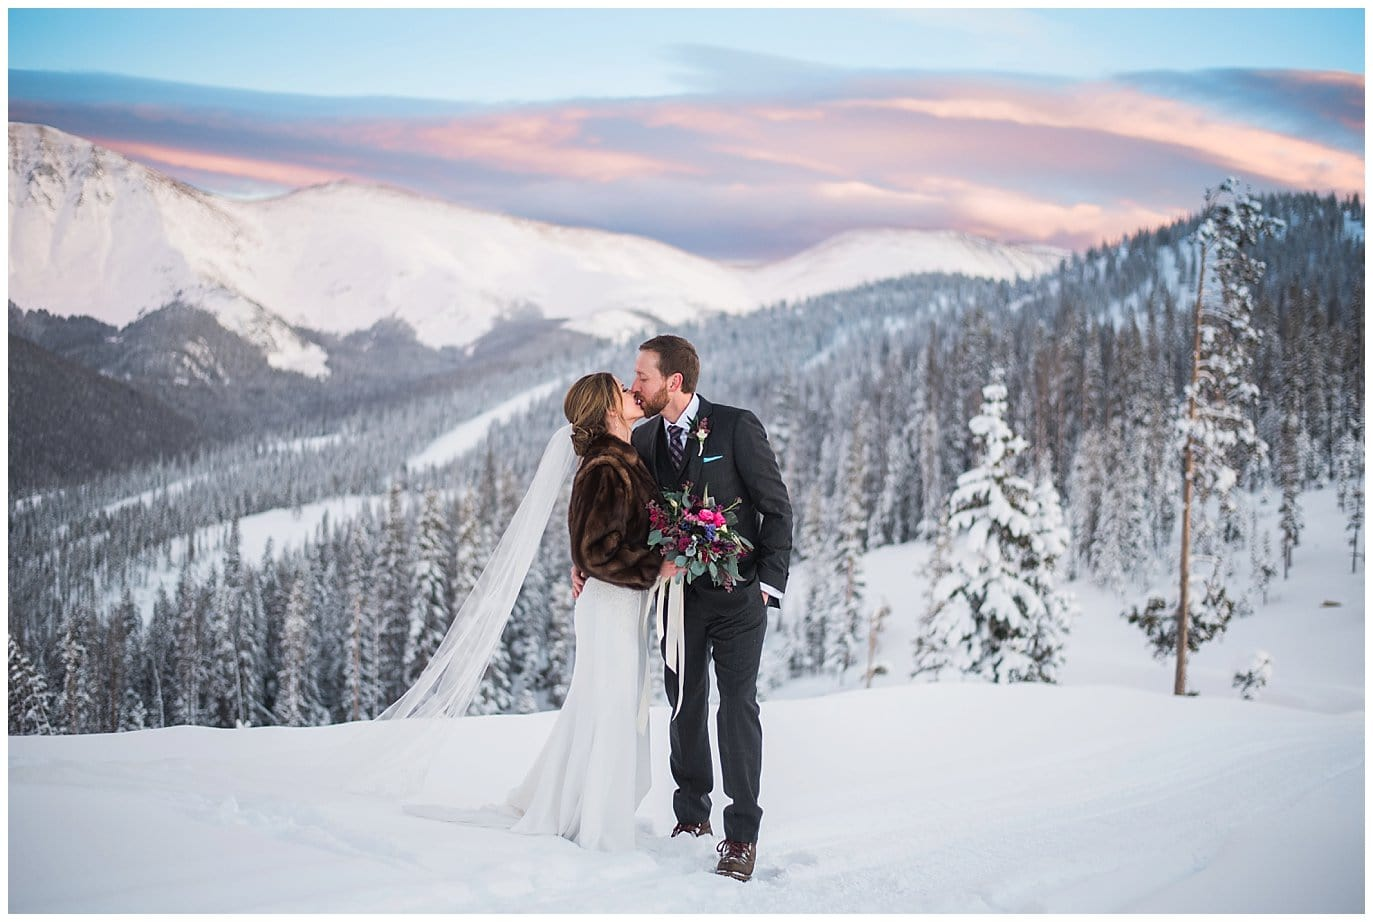 6 Tips for Planning a Destination Wedding by Colorado Wedding Photographer Jennie Crate